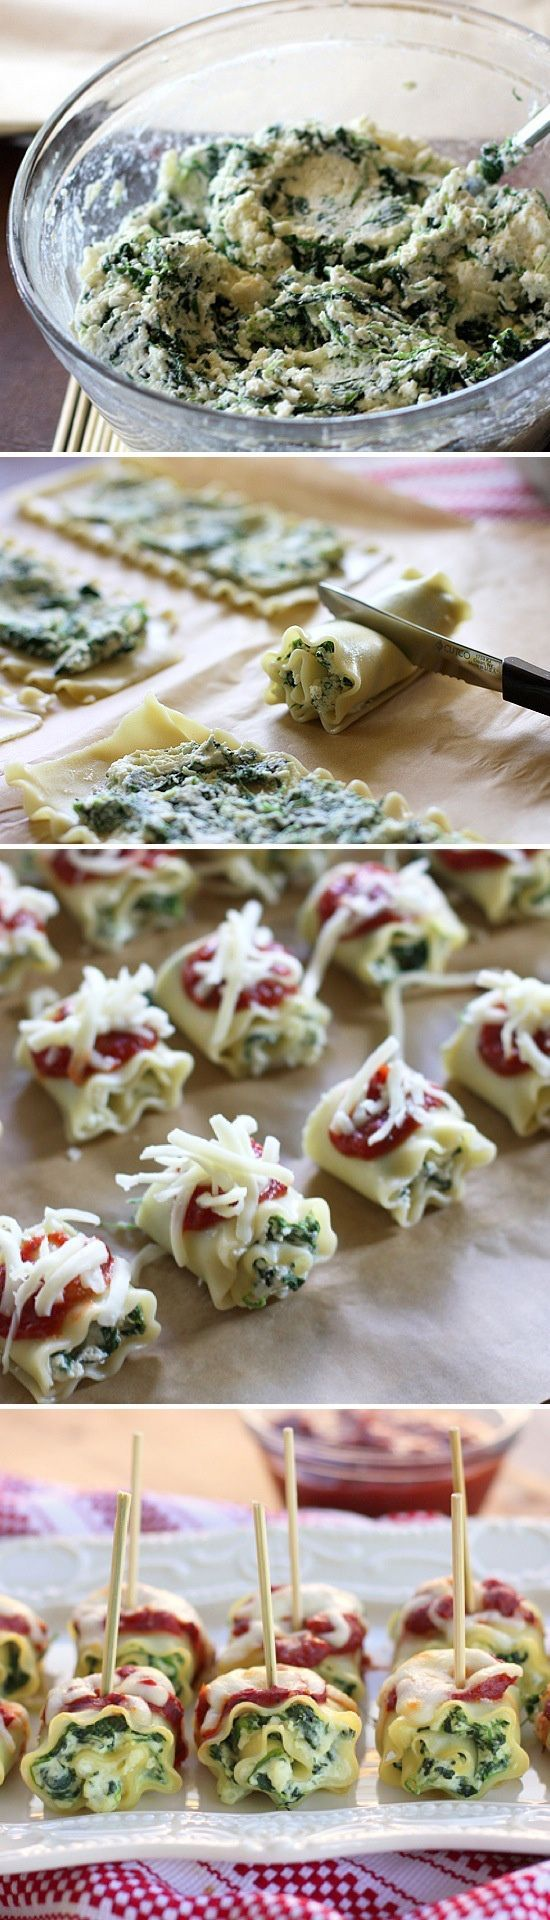 Bite-sized spinach lasagna roll-ups served with pizza sauce for dipping!